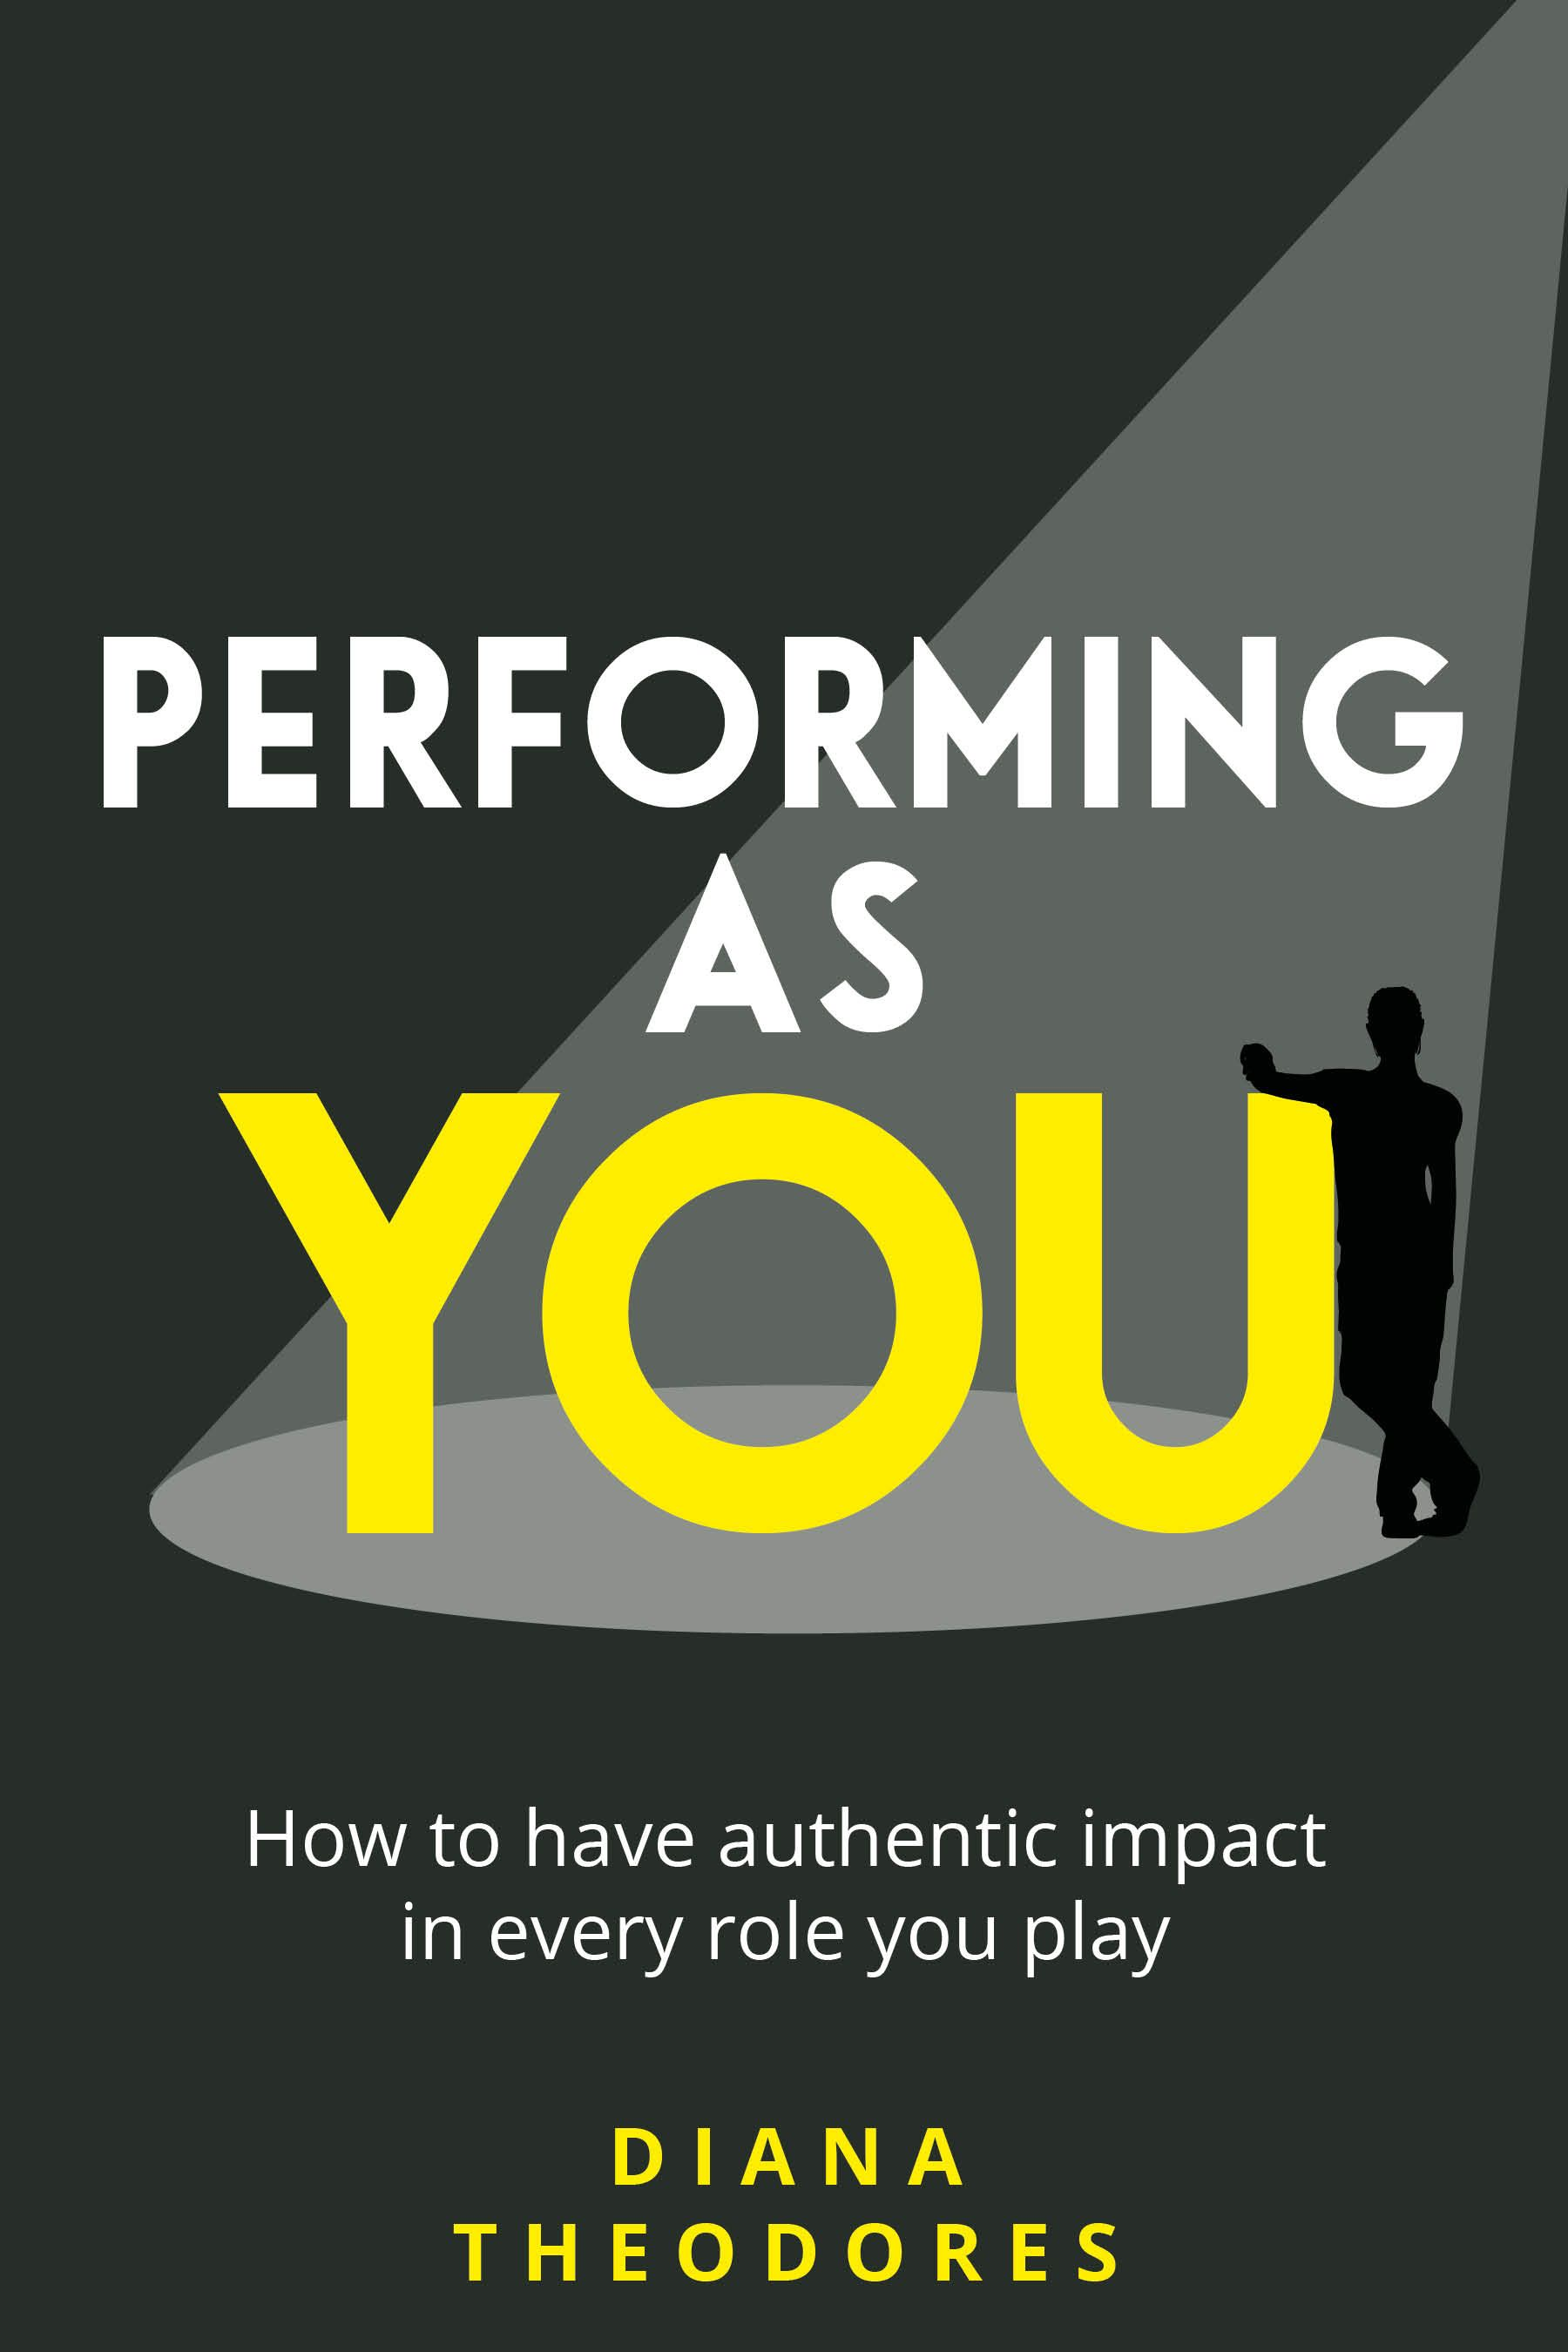 Performing-As-Your-Cover-LARGE-EBOOK